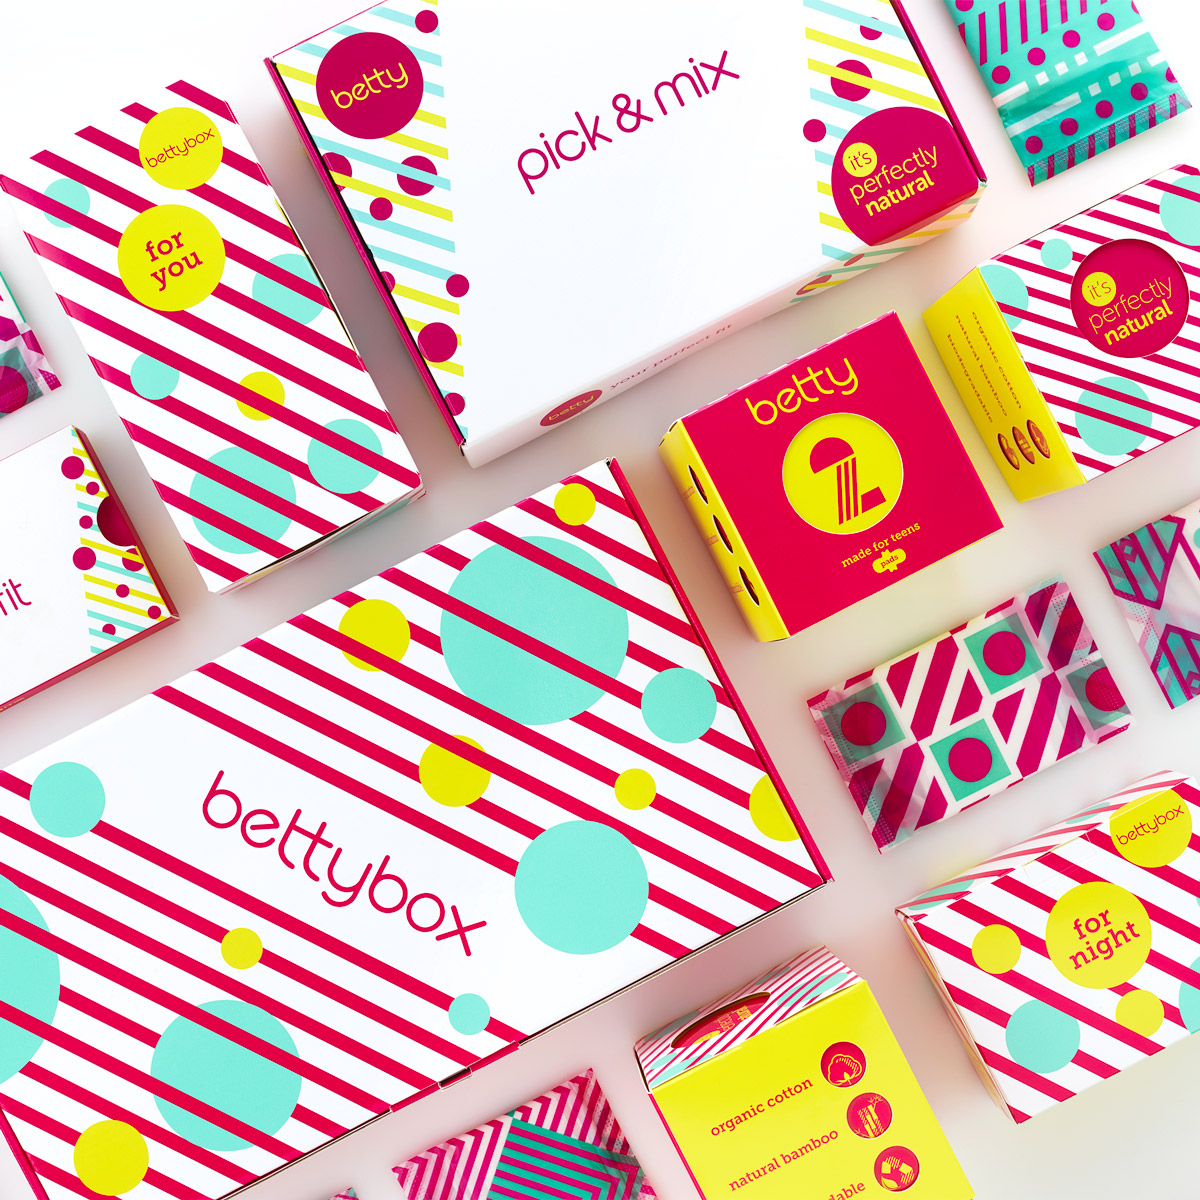 Straightforward. betty brand creation and packaging design